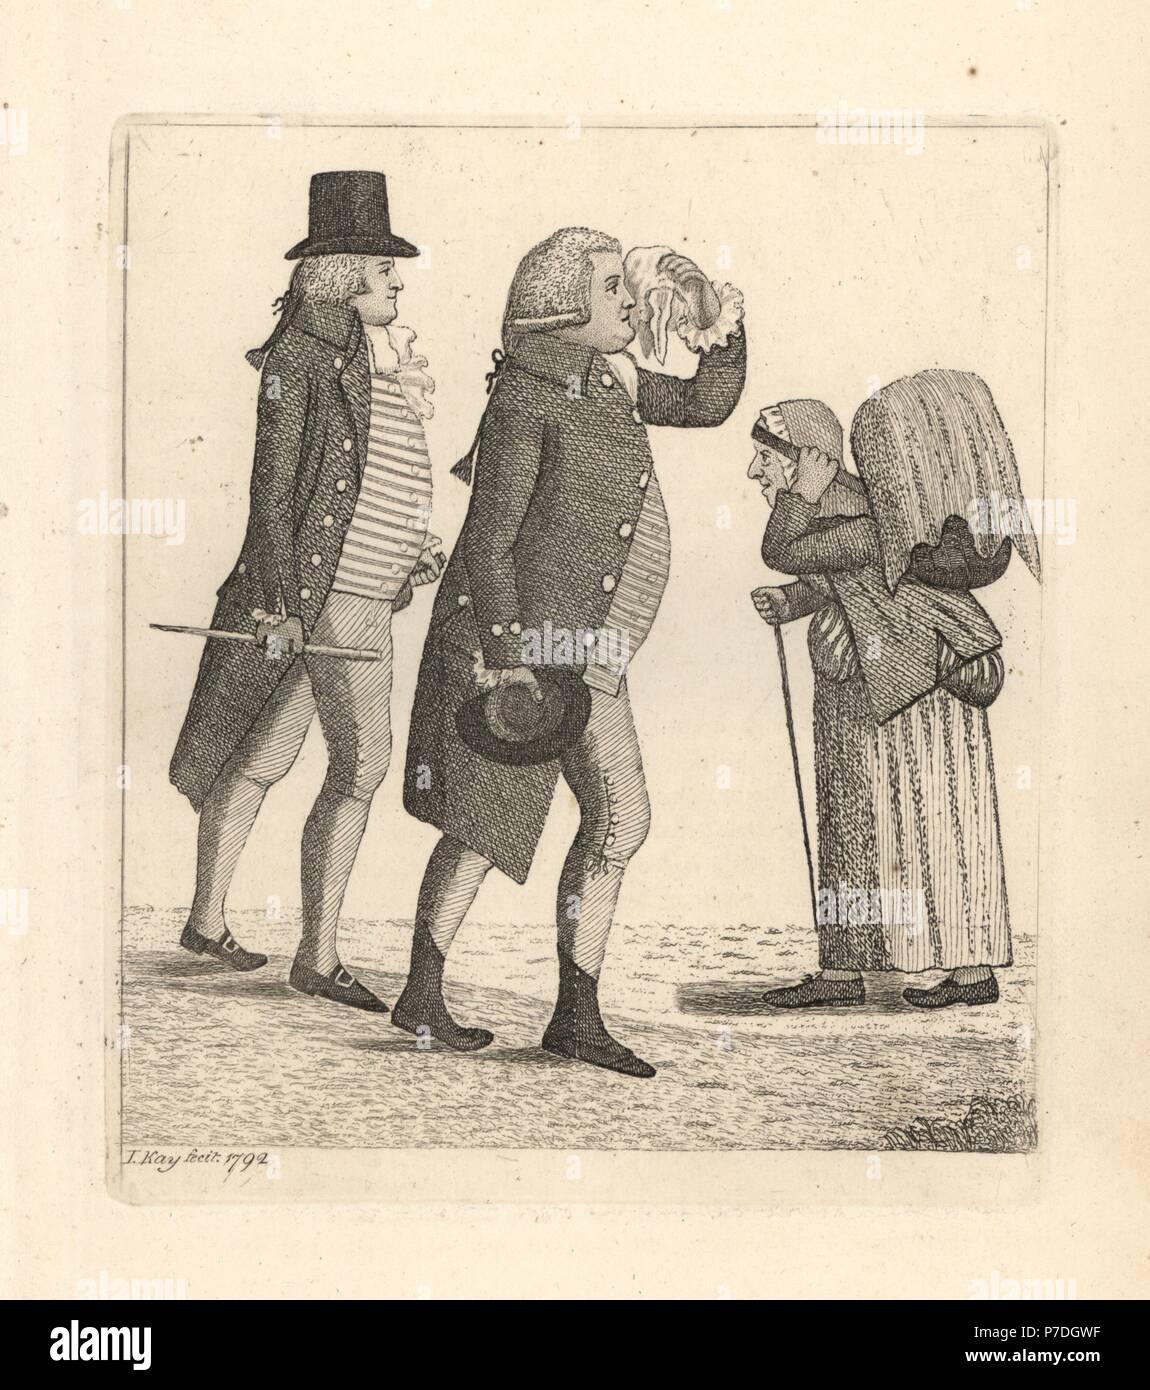 Edward Innes and James Cooper losing the bet to Hamilton Bell. Copperplate engraving by John Kay from A Series of Original Portraits and Caricature Etchings, Hugh Paton, Edinburgh, 1842. - Stock Image